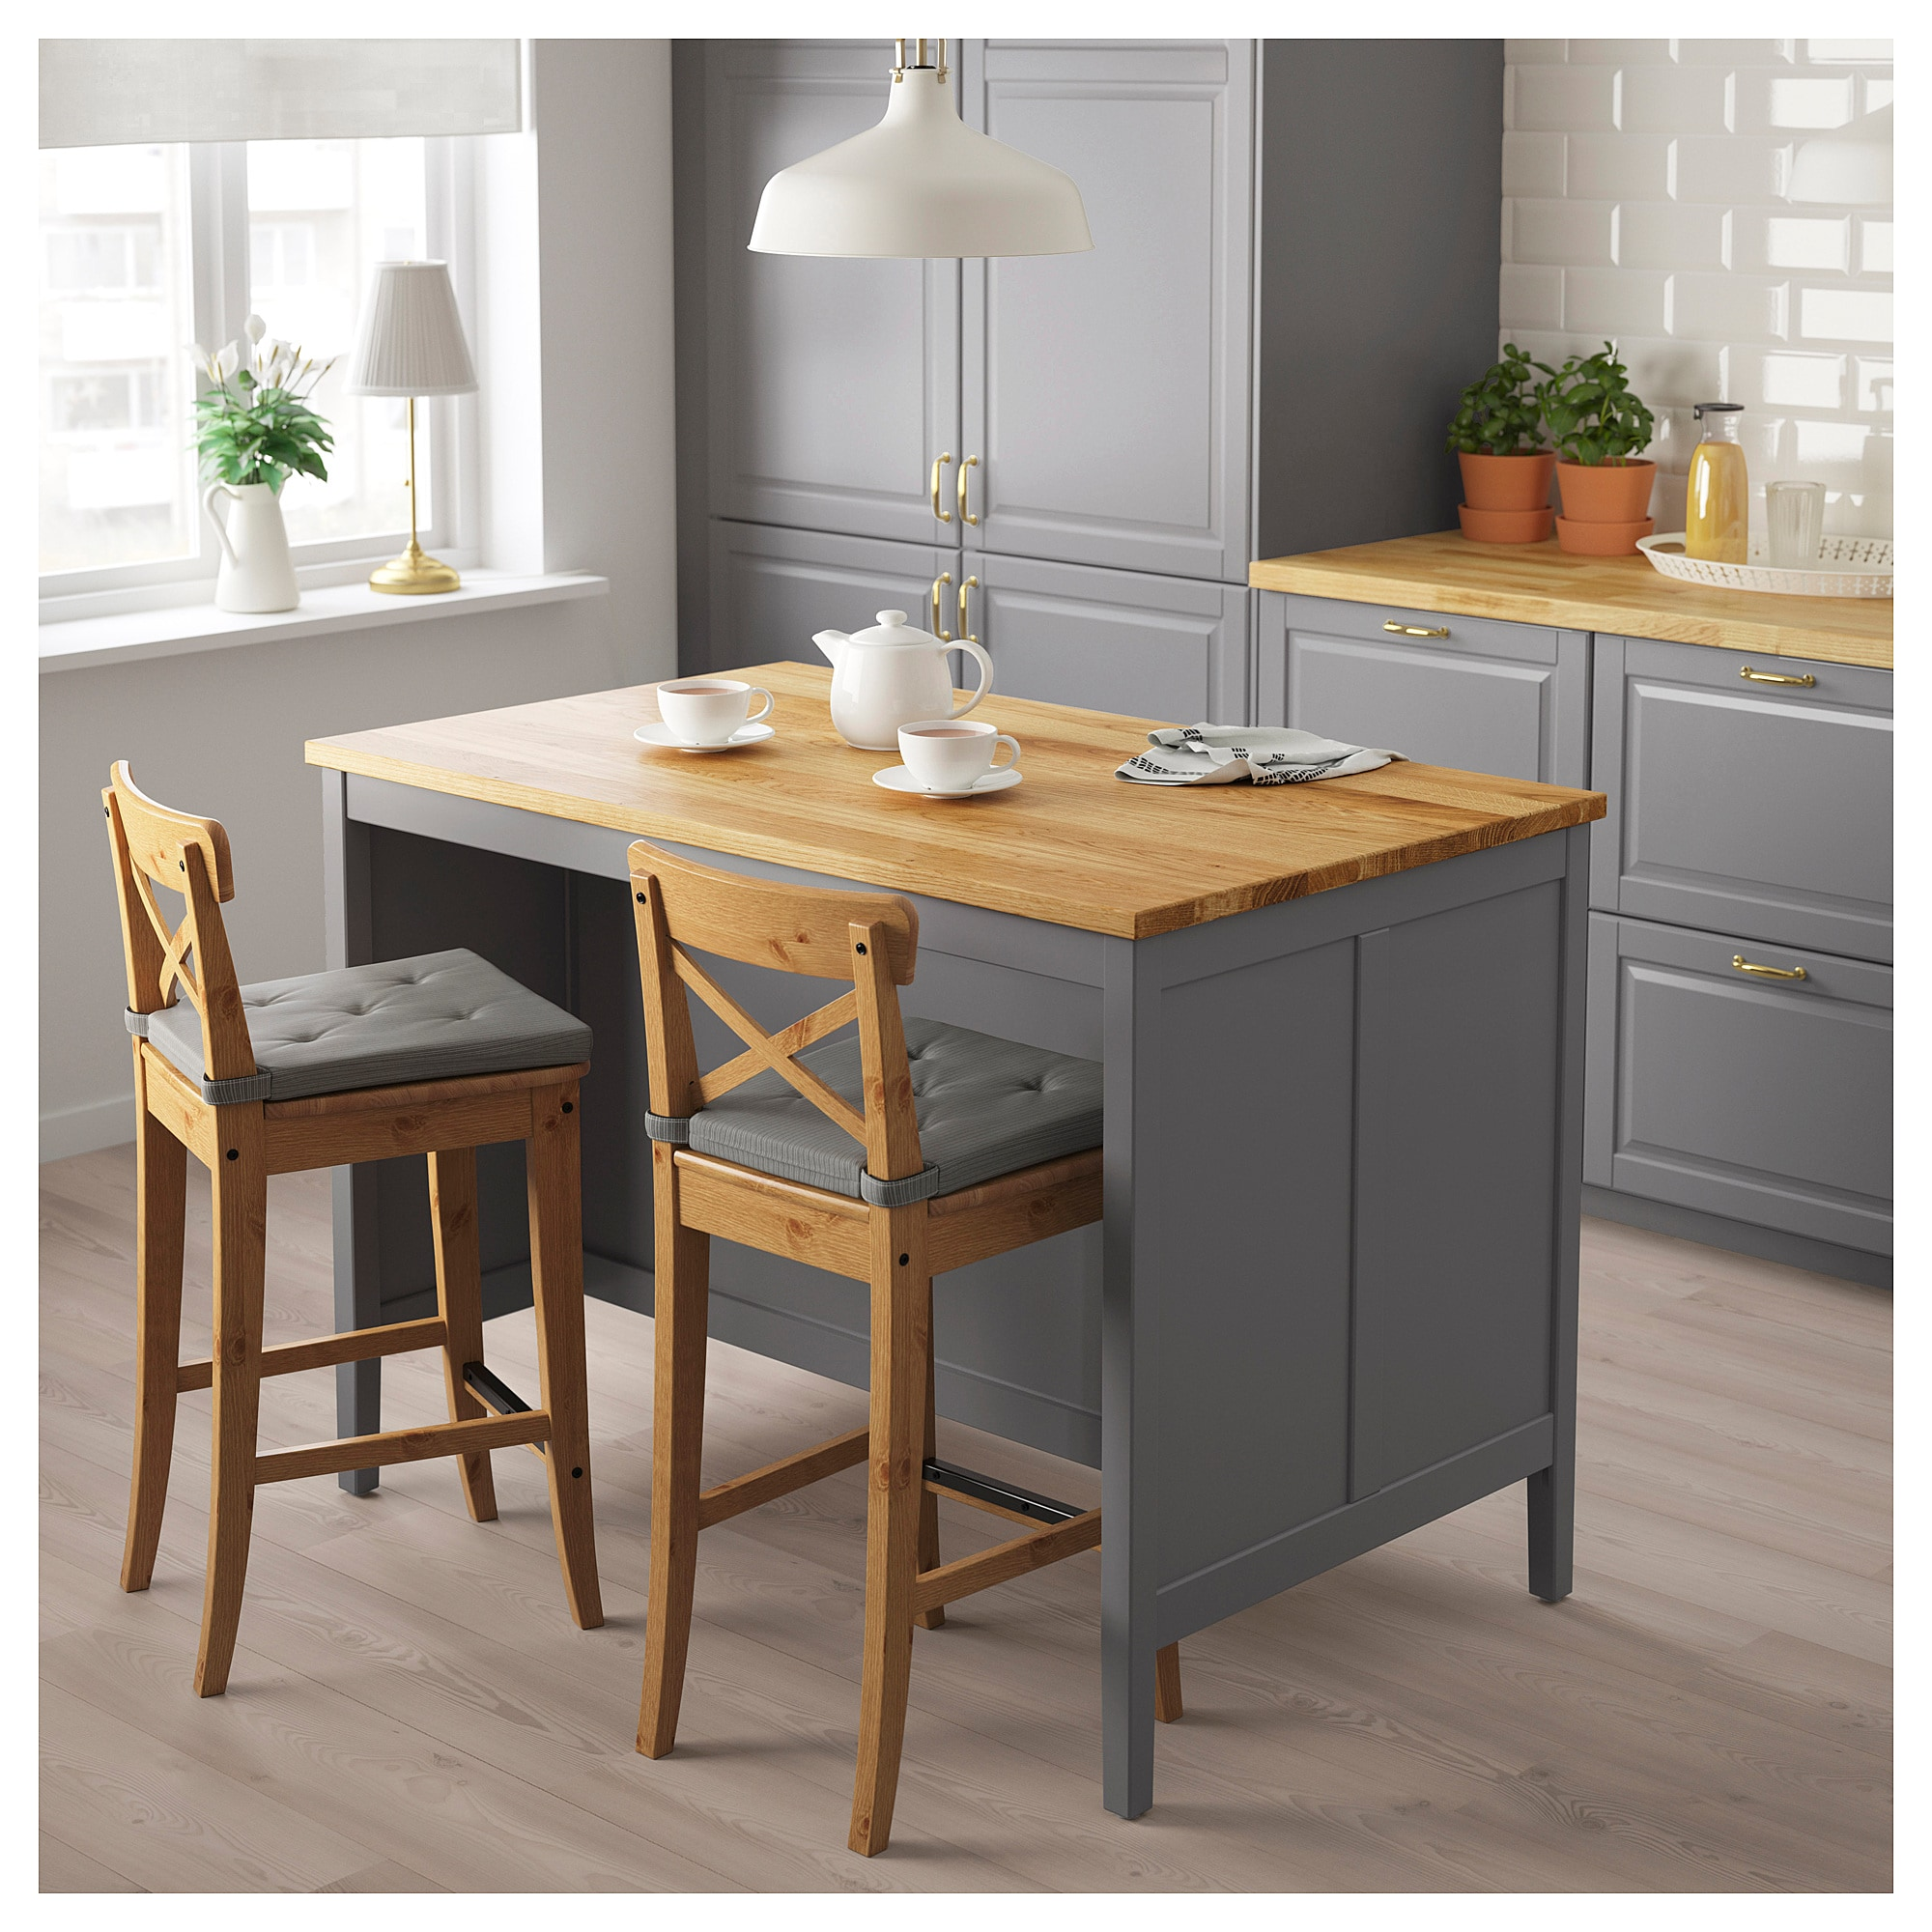 Muebles Colchones Y Decoracion Compra Online Freestanding Kitchen Island Ikea Kitchen Island Grey Kitchen Island